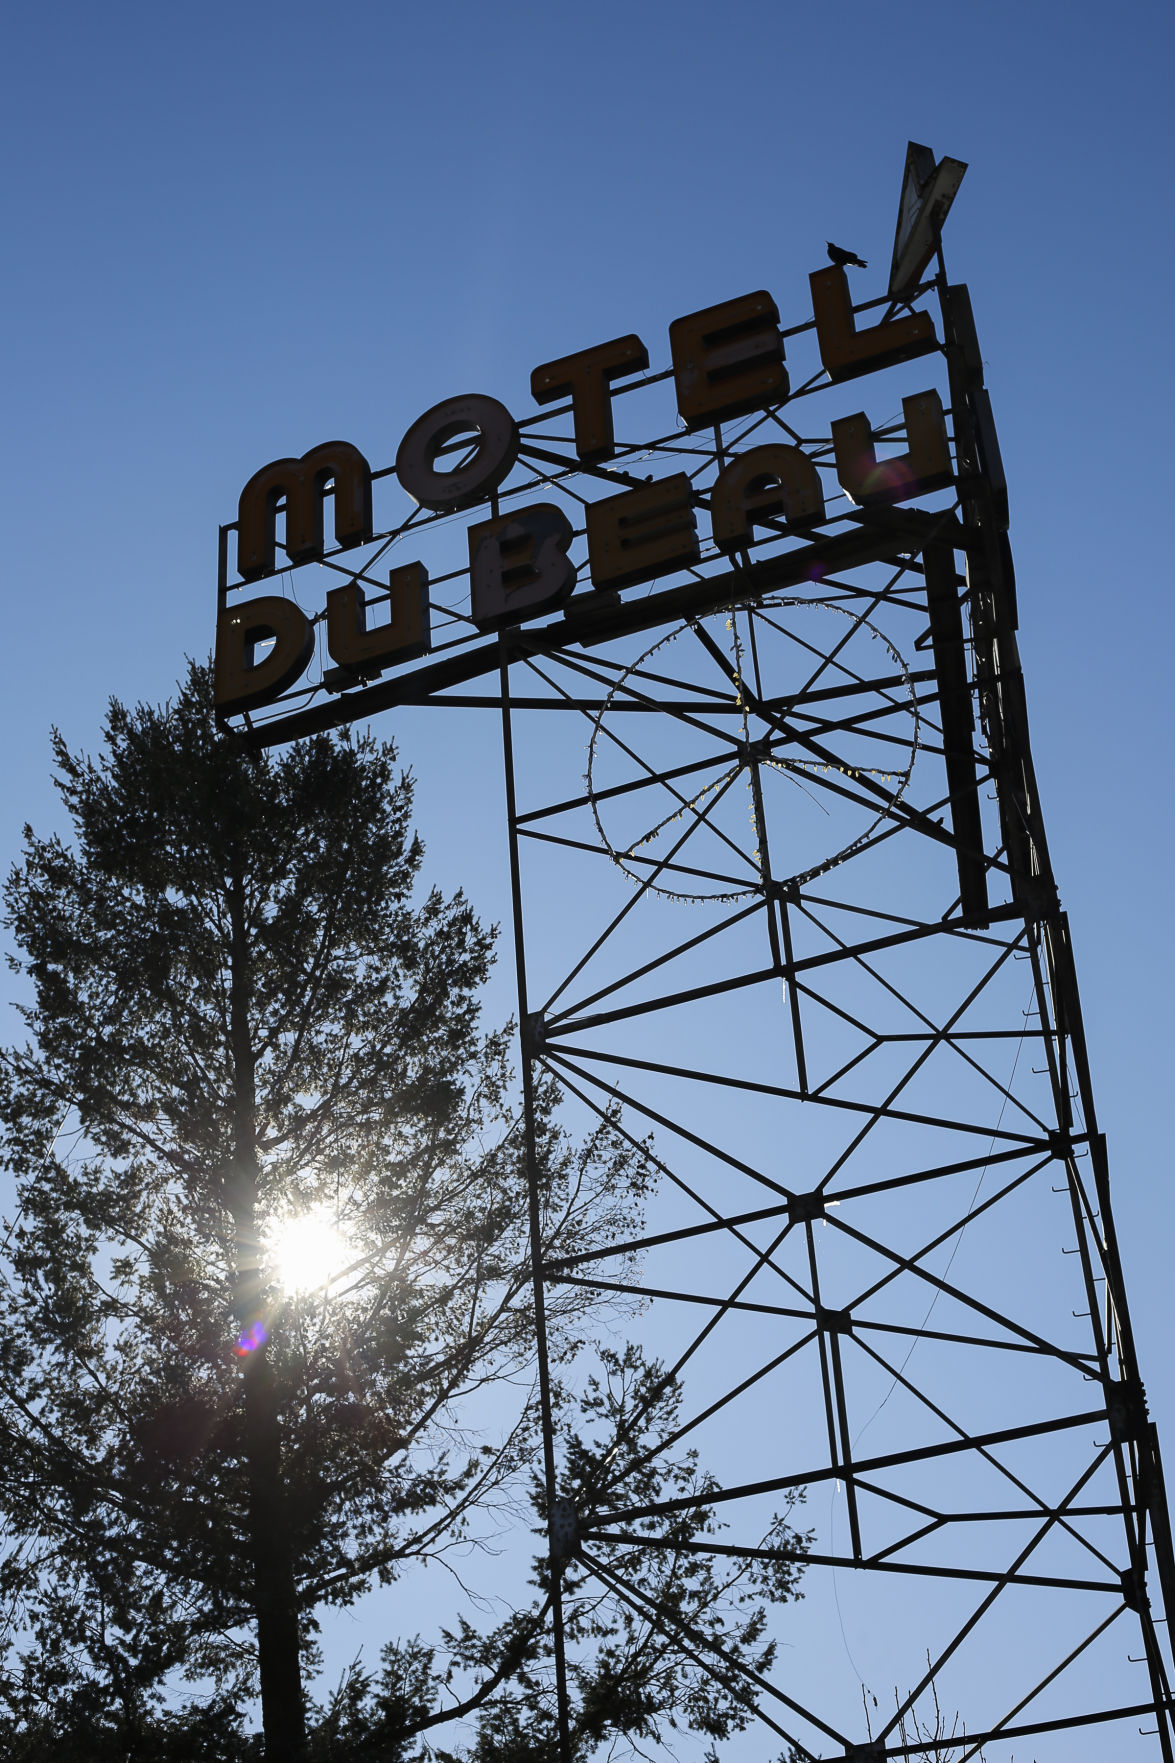 Get some kicks, road trips and flicks with the roots of Route 66